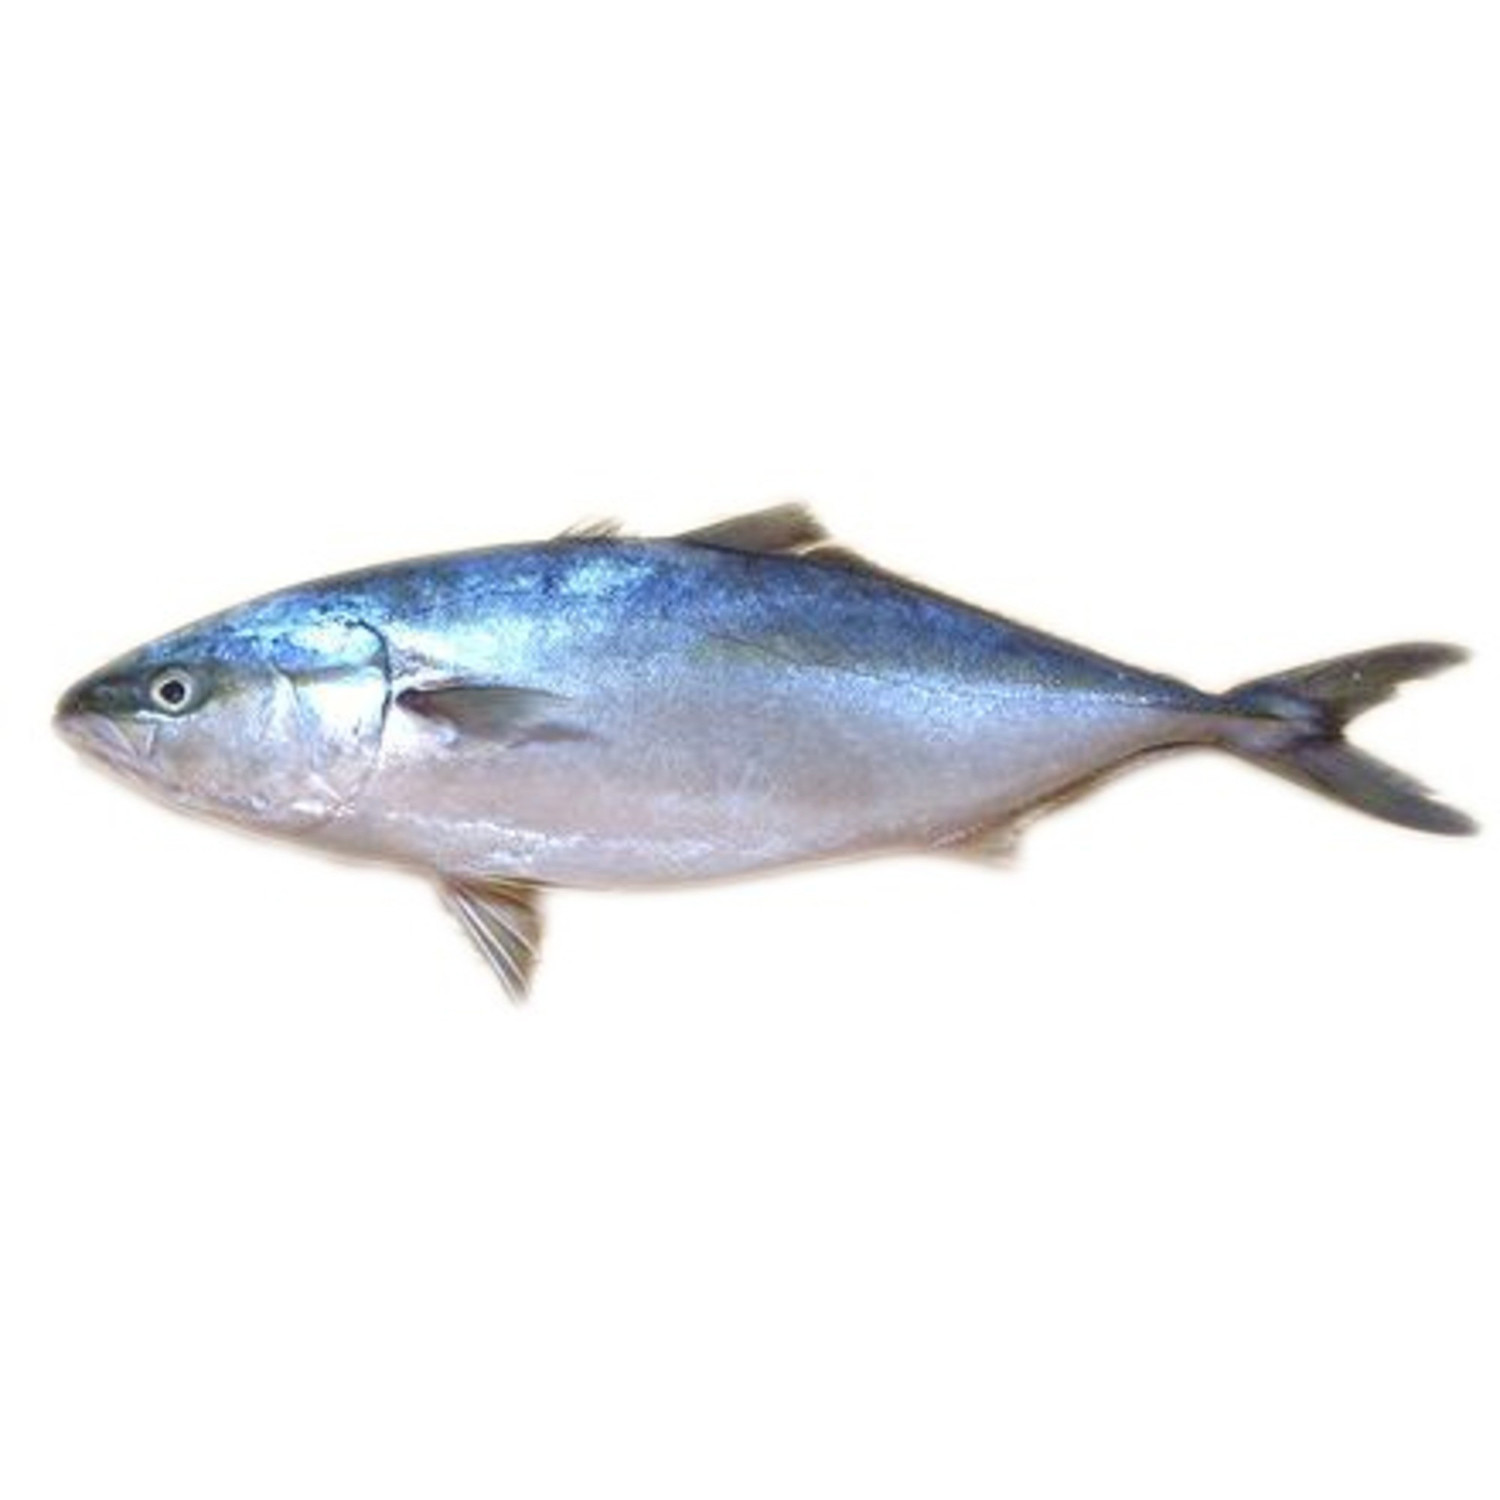 Yellowtail  Definition of Yellowtail by MerriamWebster